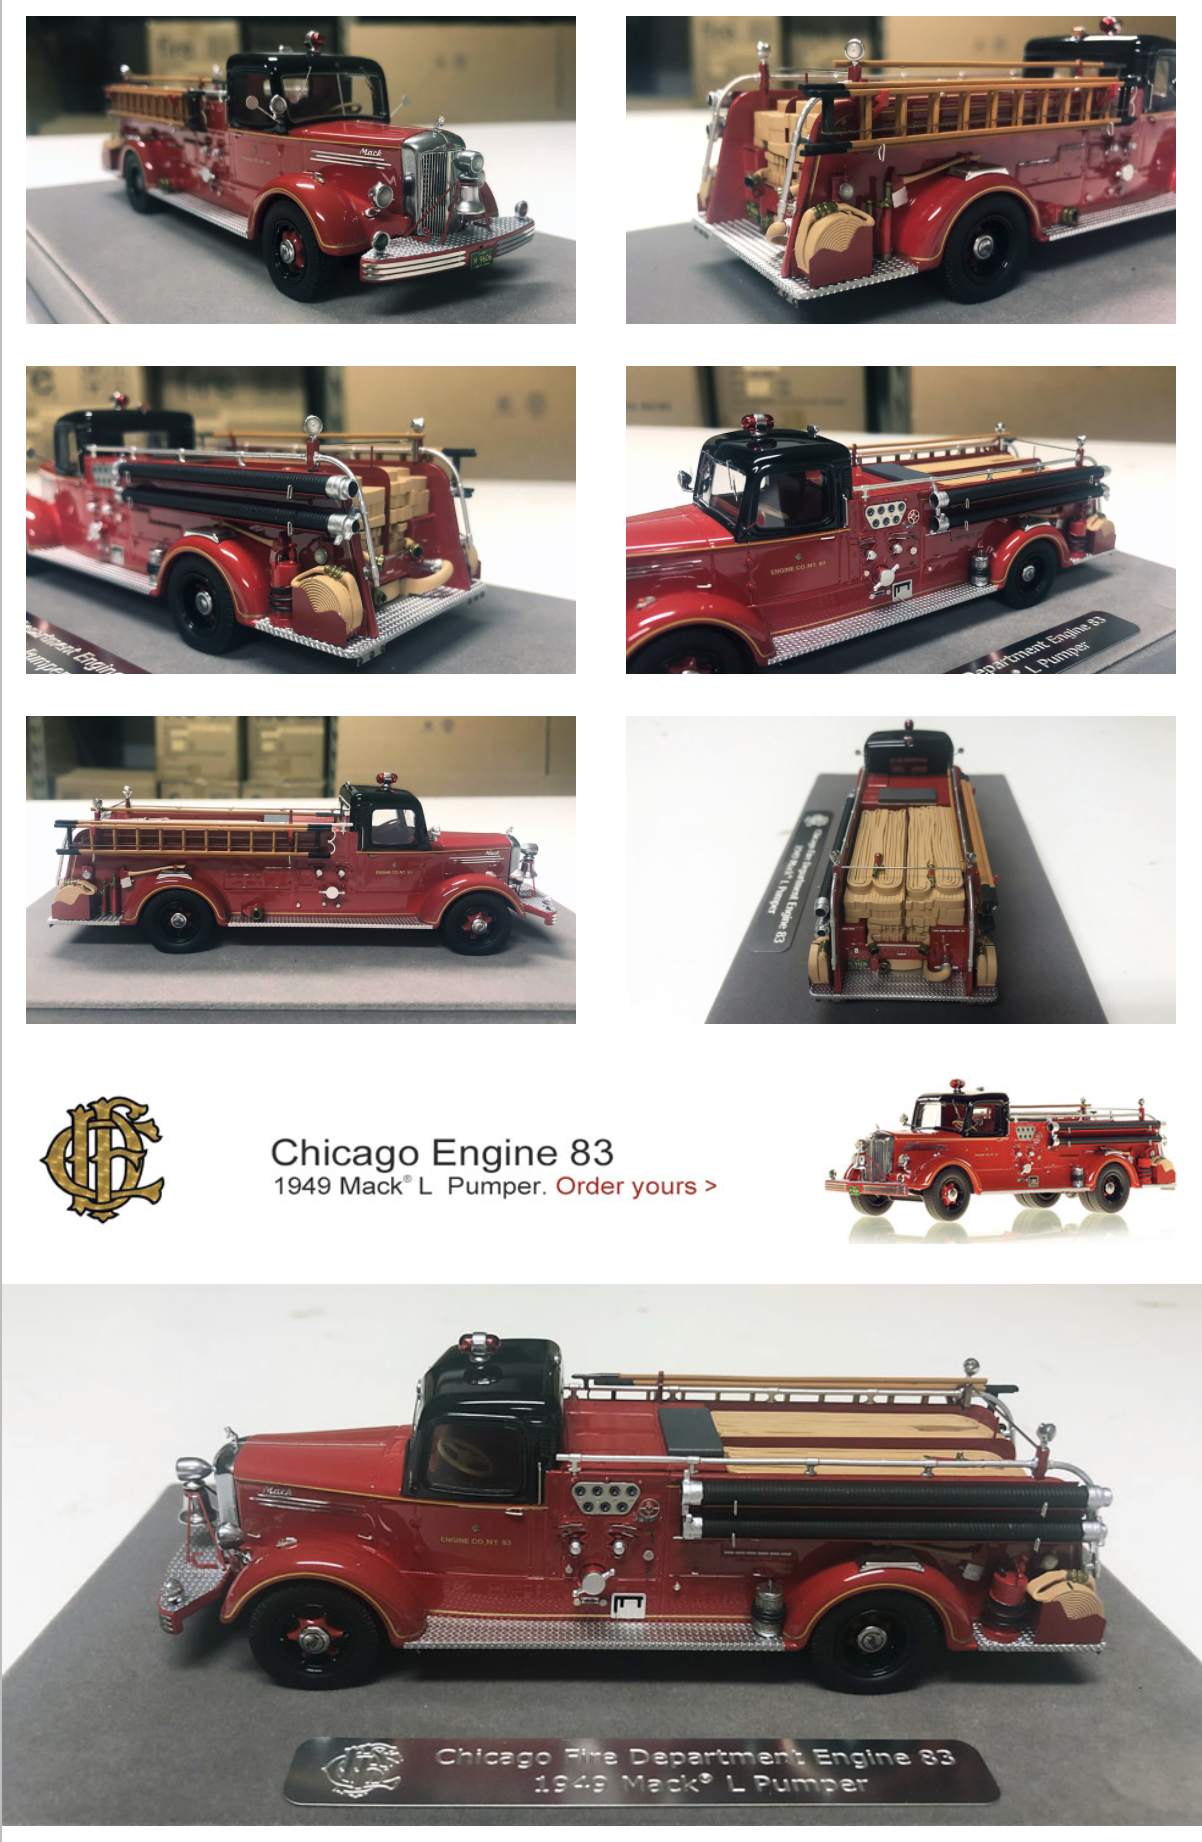 Chicago FD 1949 Mack L ire engine replica model from Fire Replicas